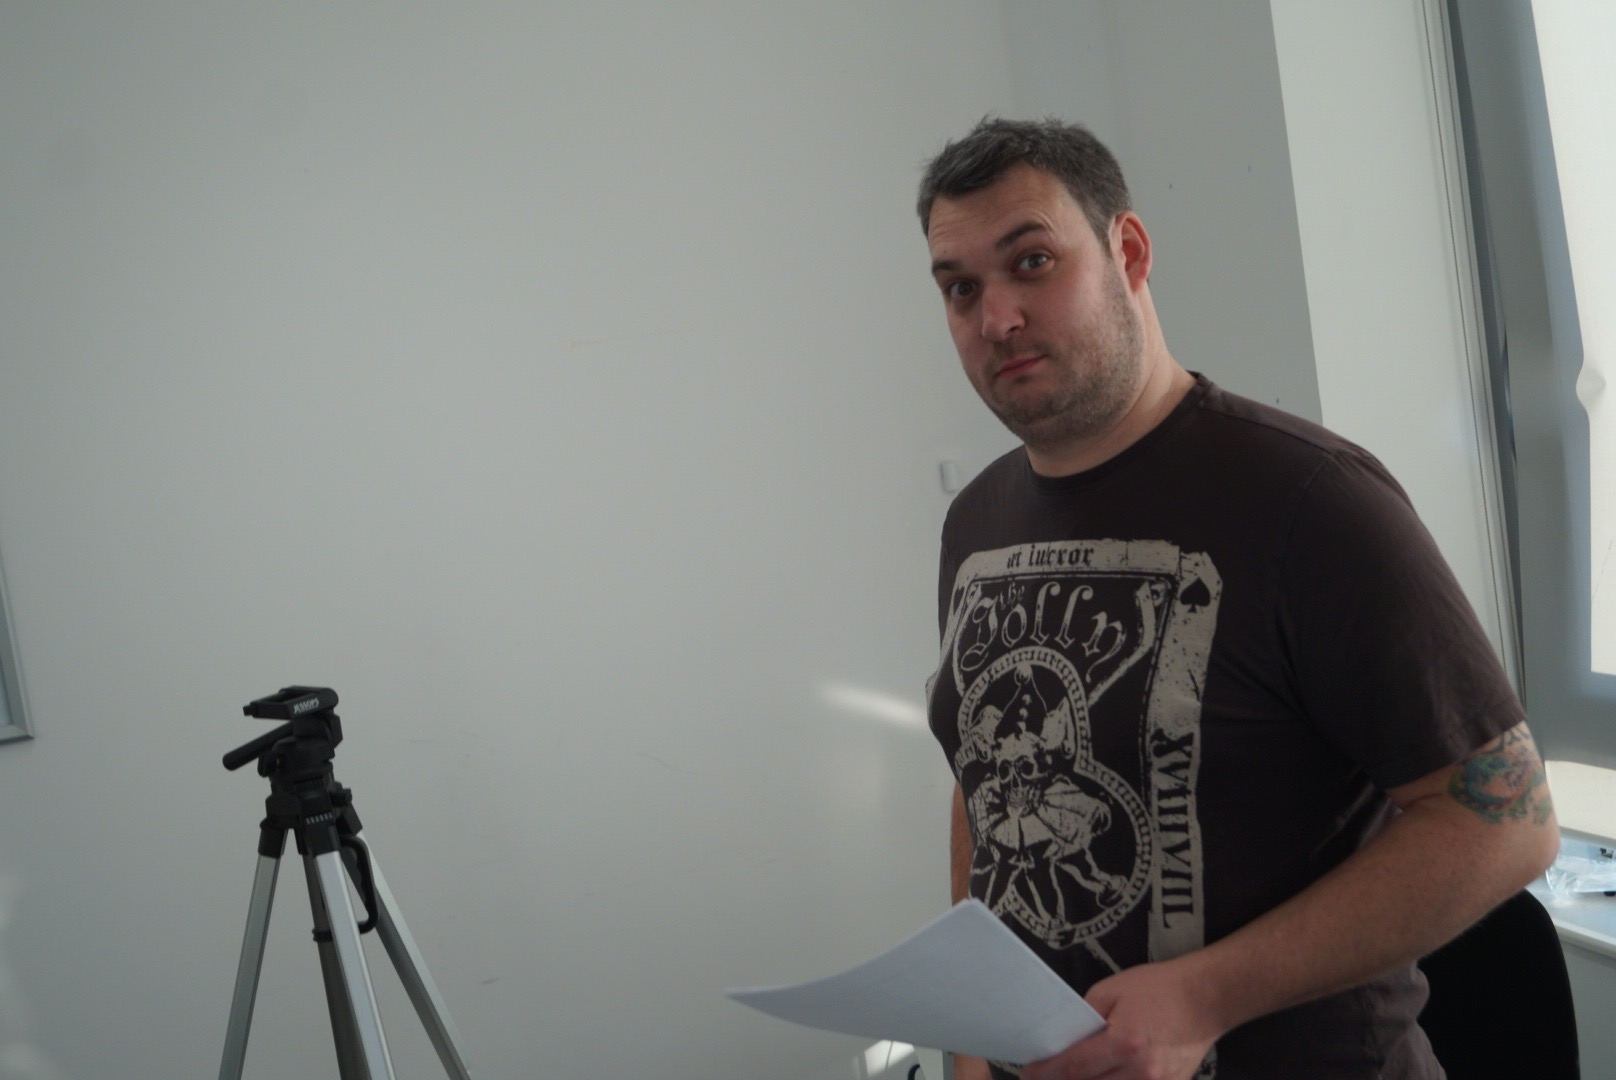 Shoot Day 2 - Director, Matt Fisher